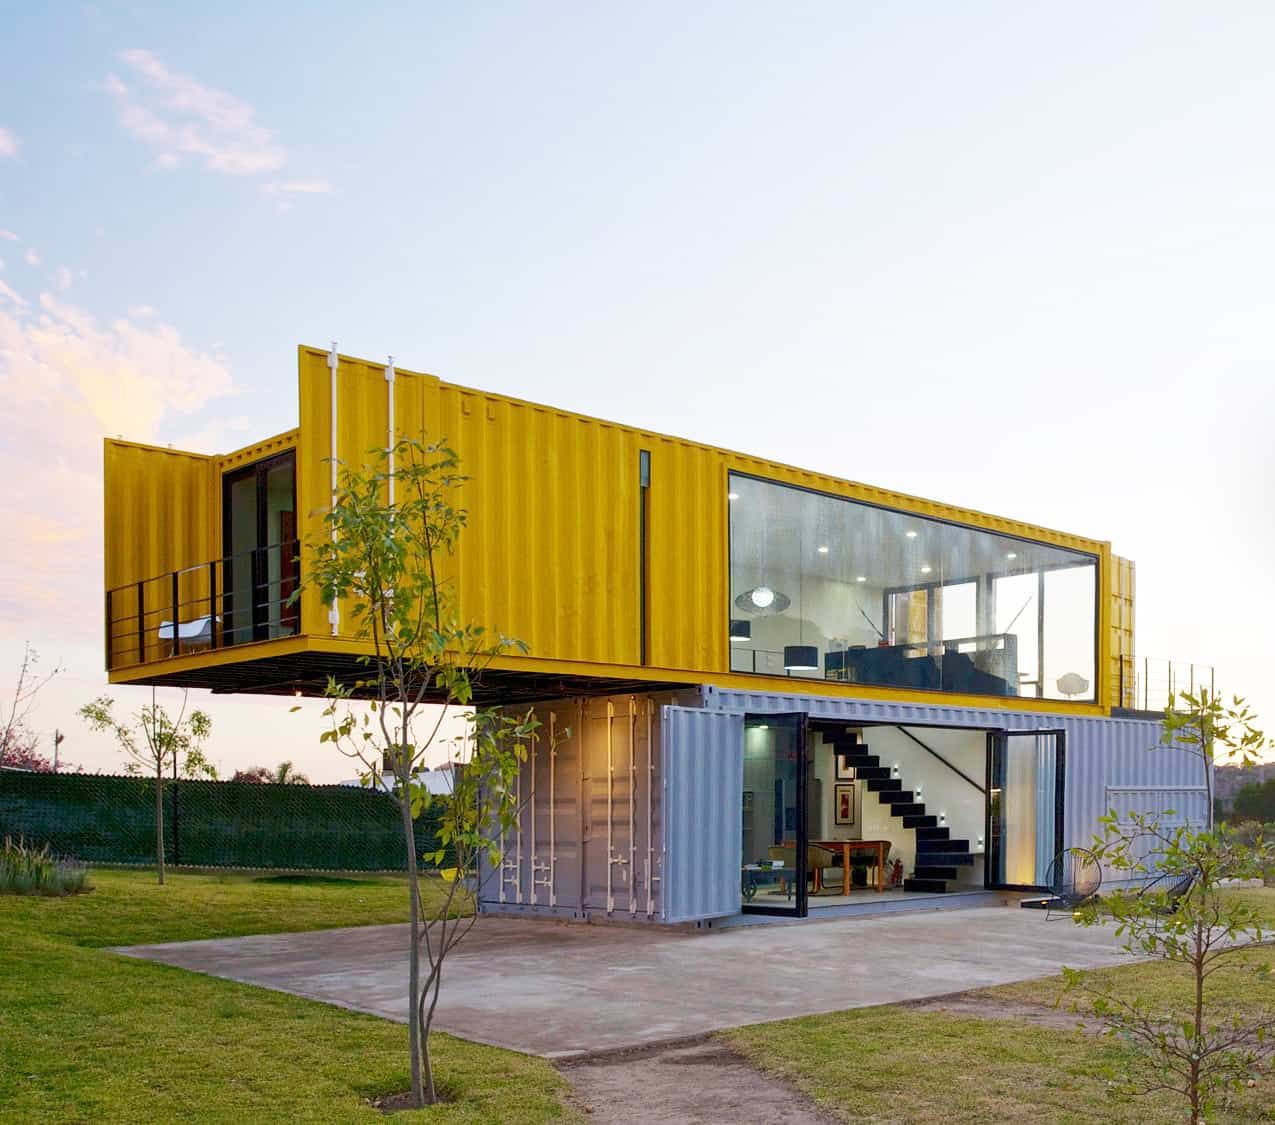 Container Home Design Ideas: 4 Shipping Containers Prefab Plus 1 For Guests